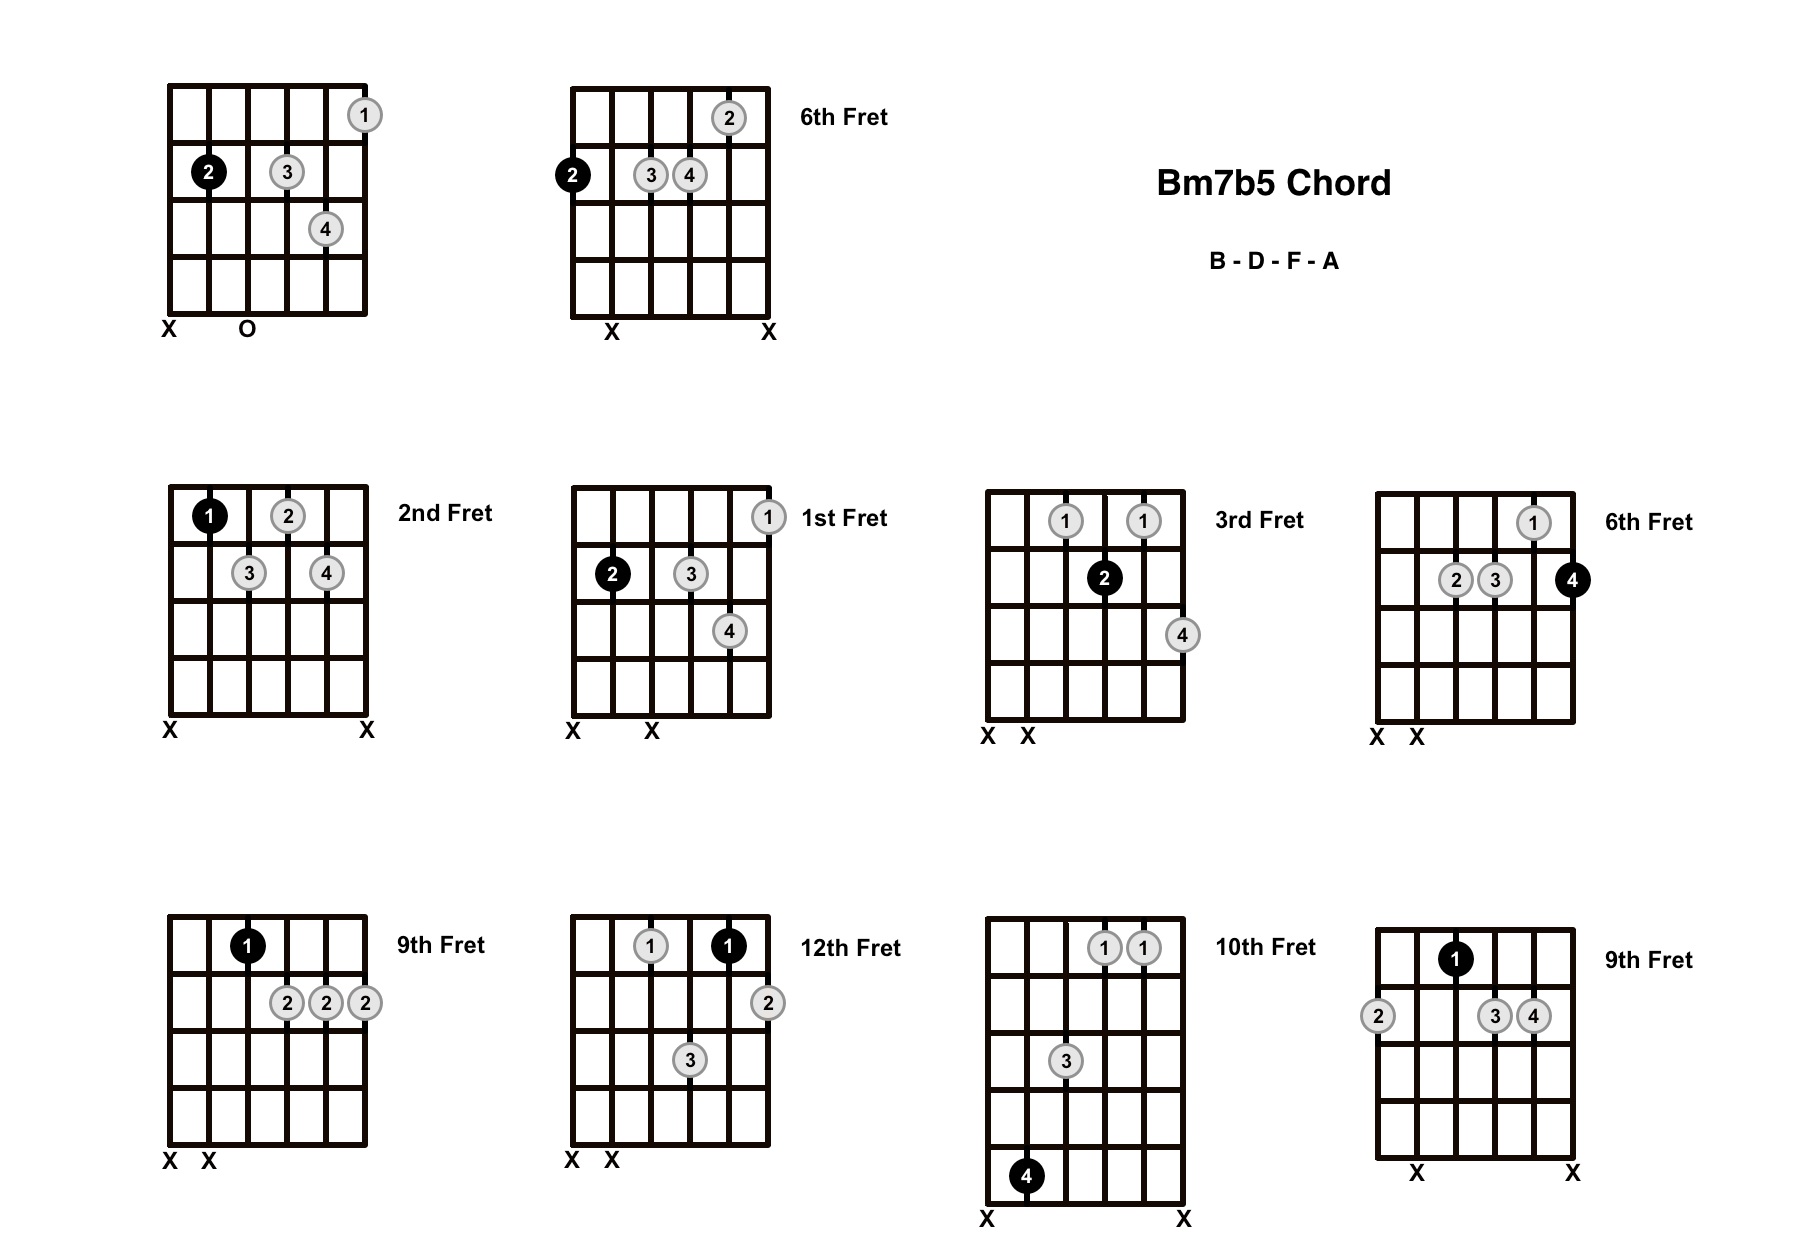 Bm7b5 Chord On The Guitar (B Minor 7 Flat 5, B Half Diminished) – Diagrams, Finger Positions and Theory